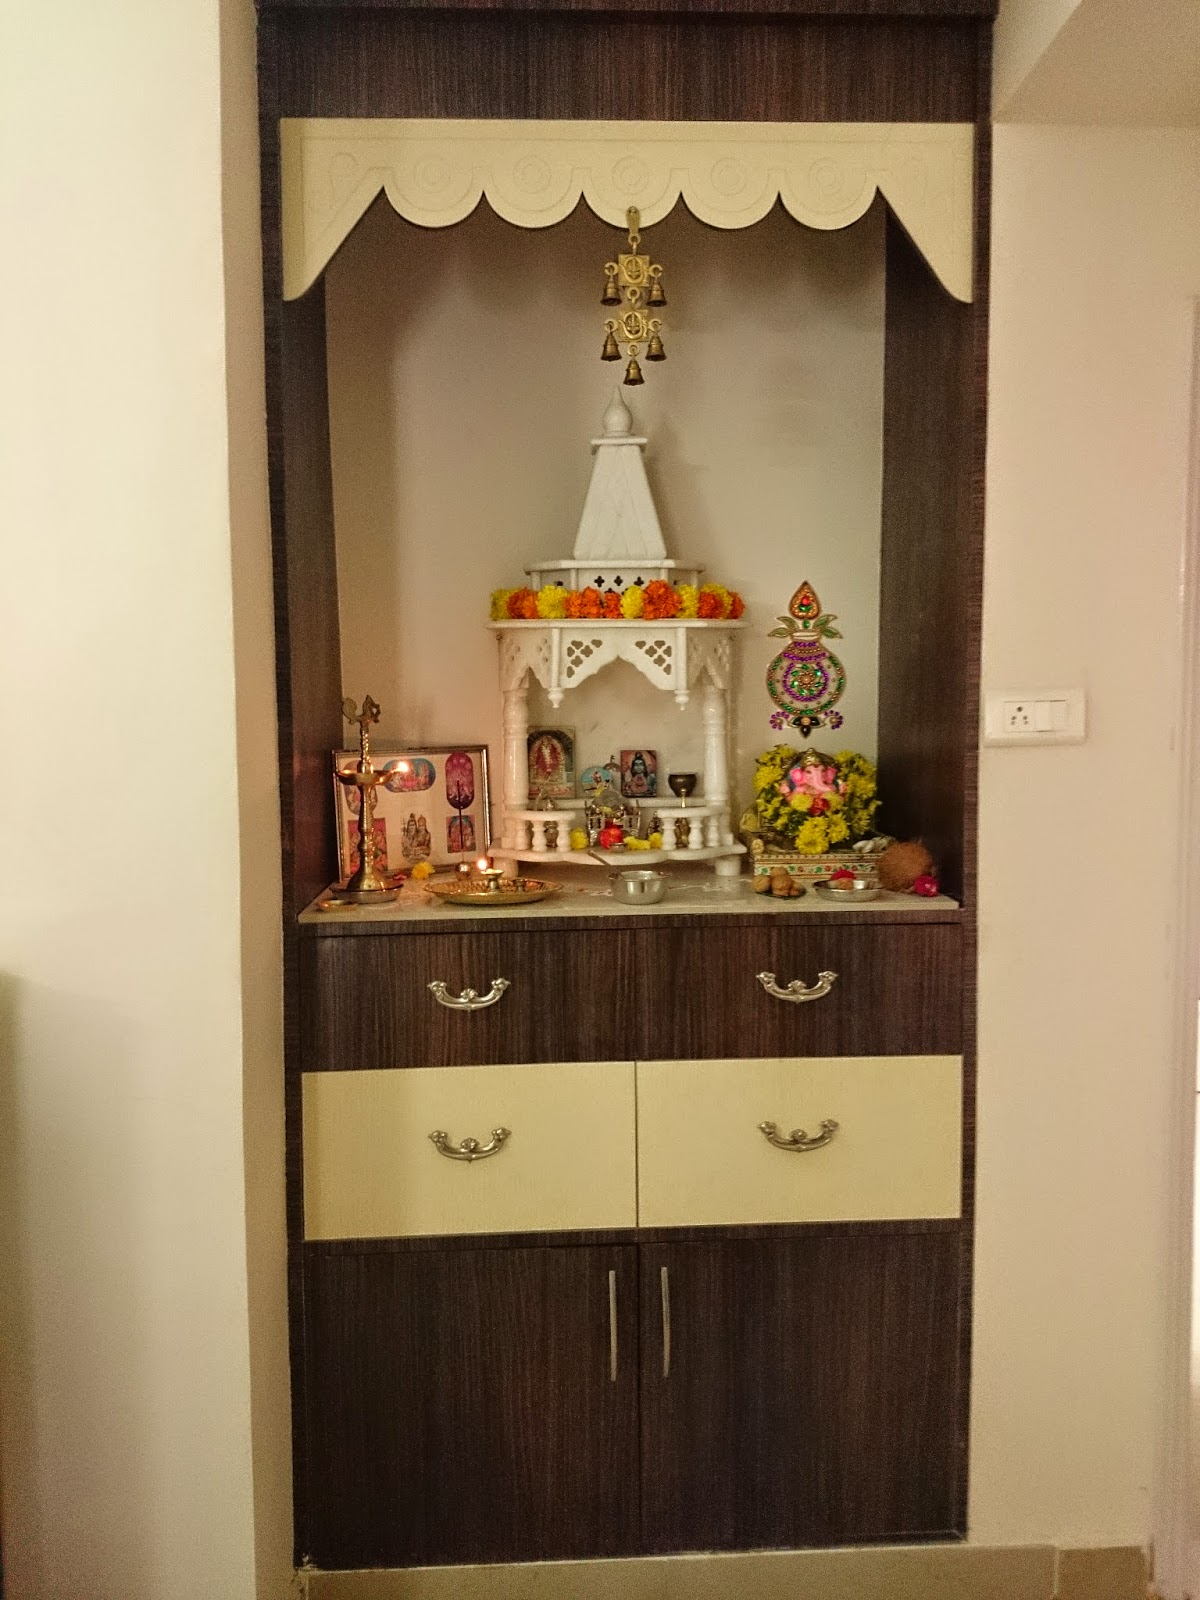 High Quality Awesome Hindu Small Temple Design Pictures For Home Contemporary .